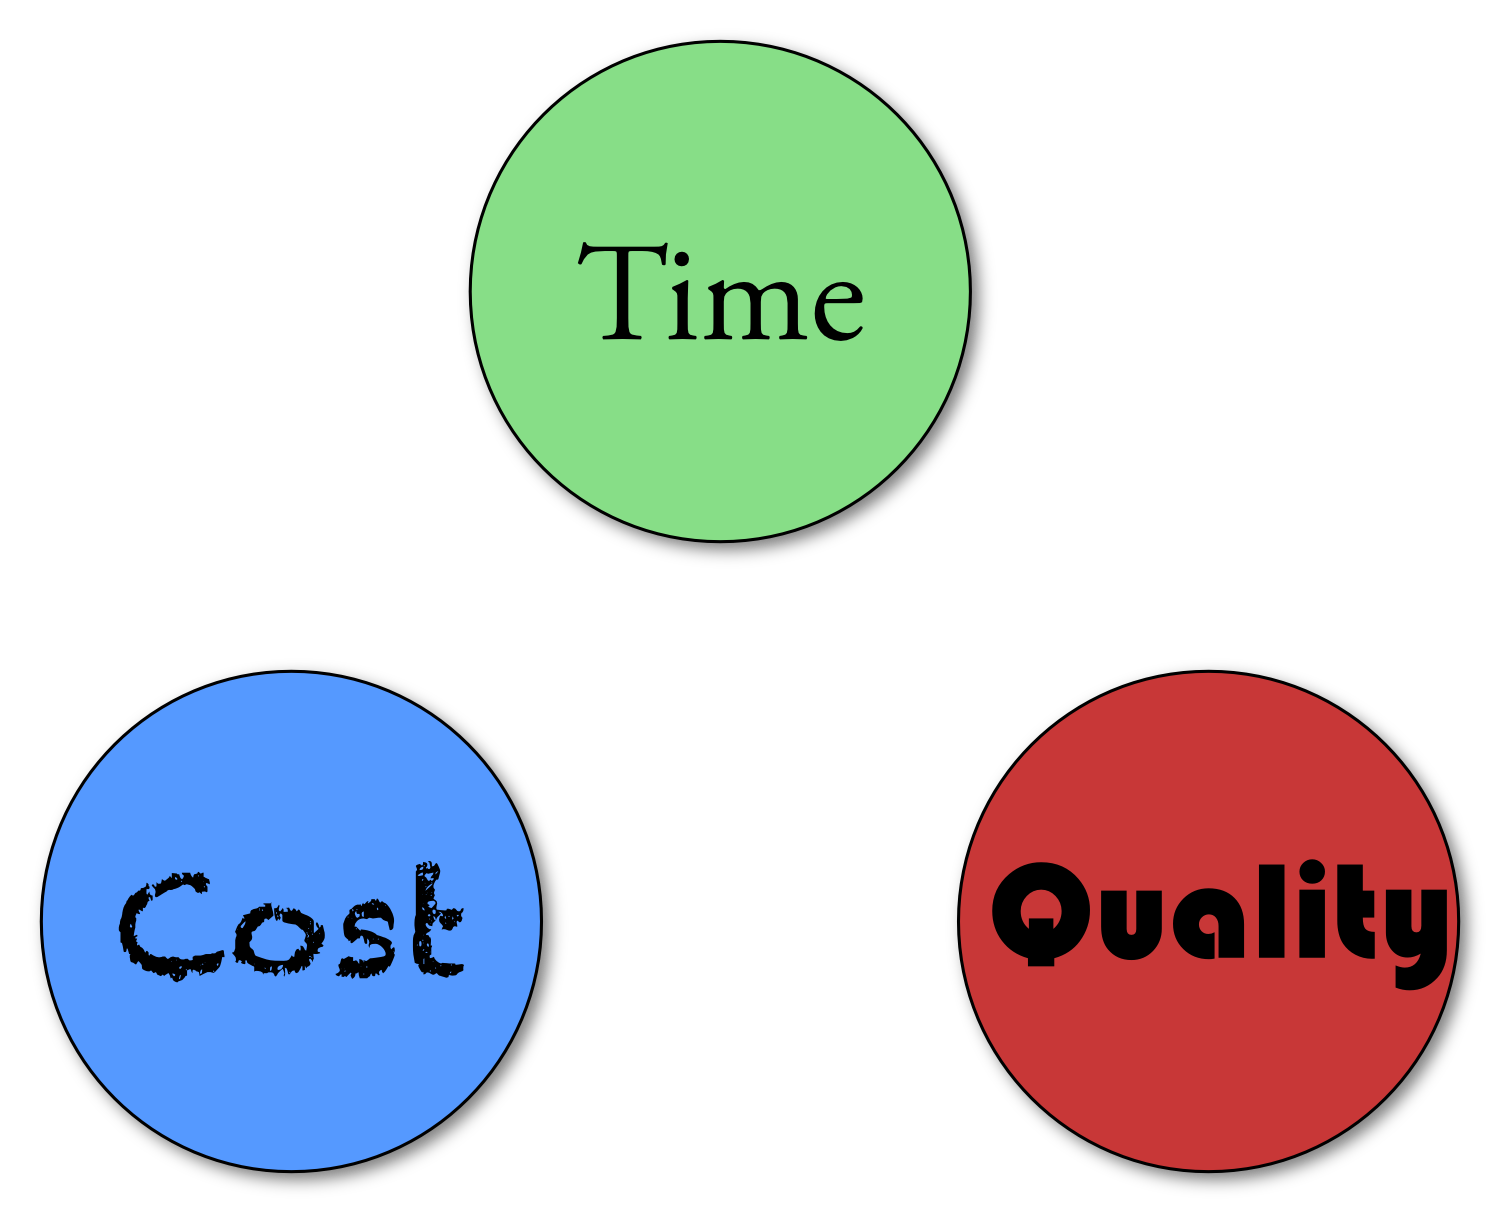 Time cost quality magic triangle